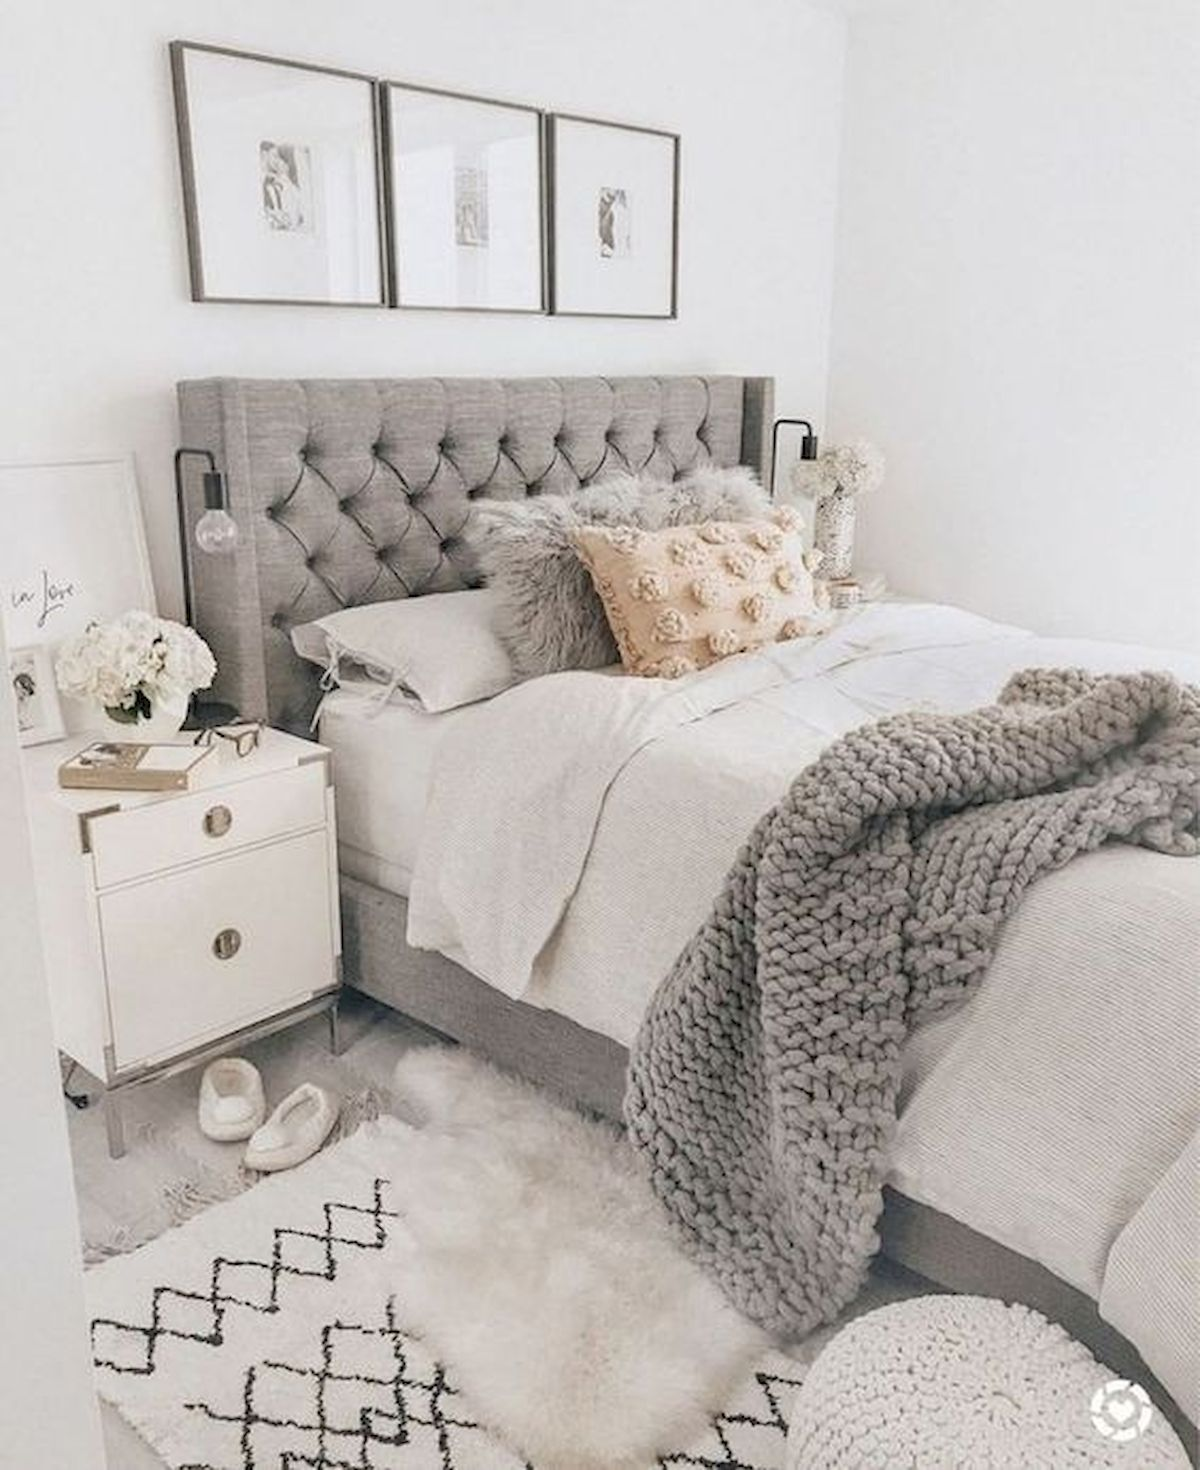 44 Awesome White Master Bedroom Design and Decor Ideas For Any Home Design (38)